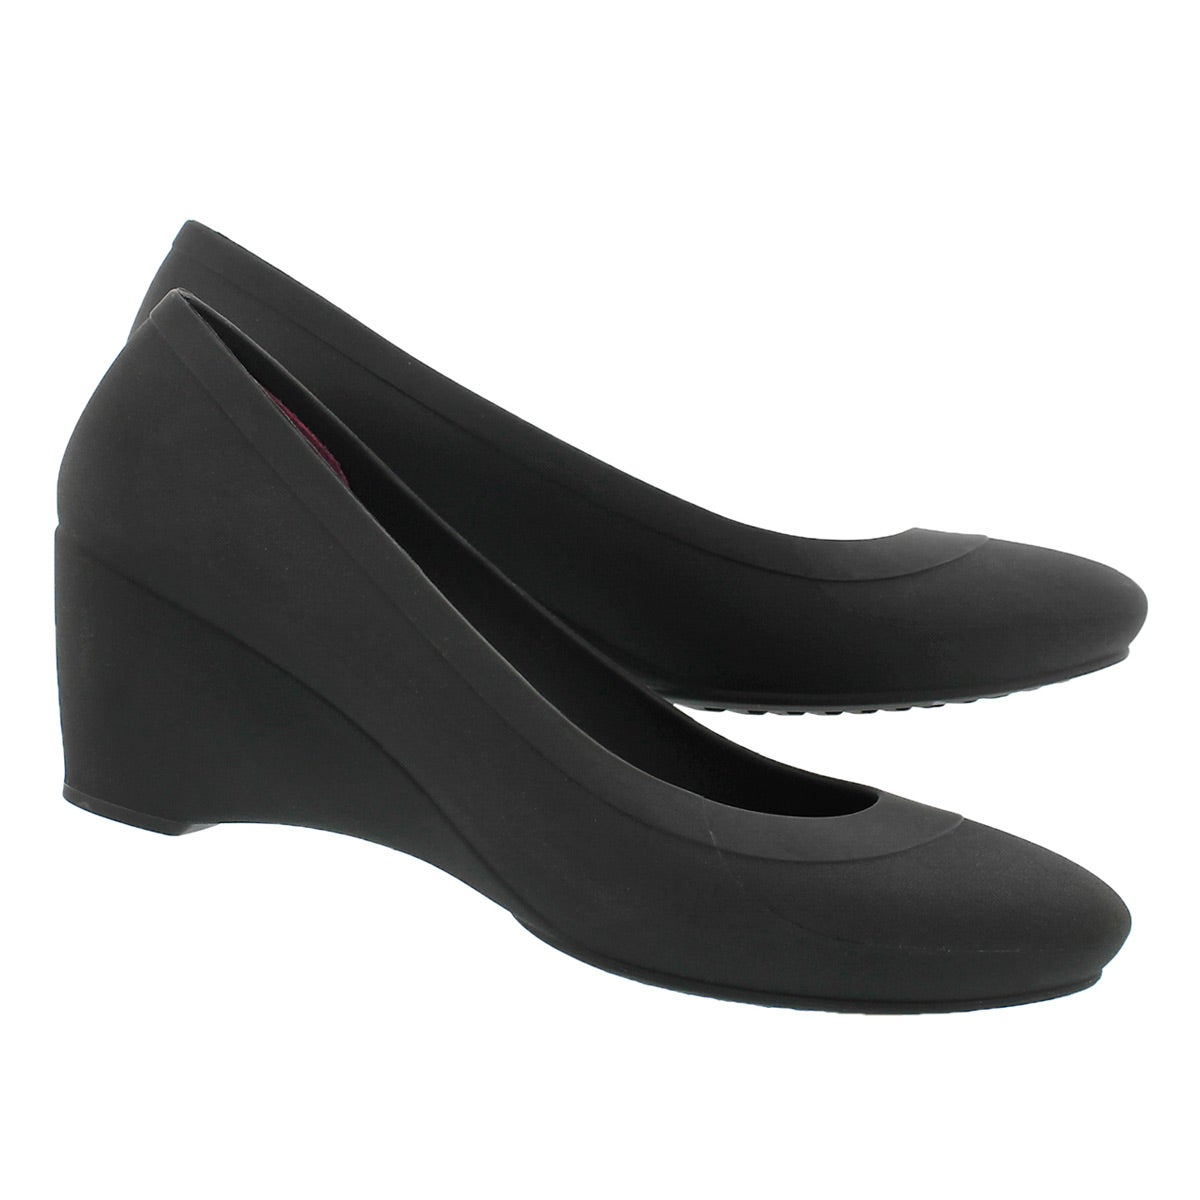 Lds Lina black wedge